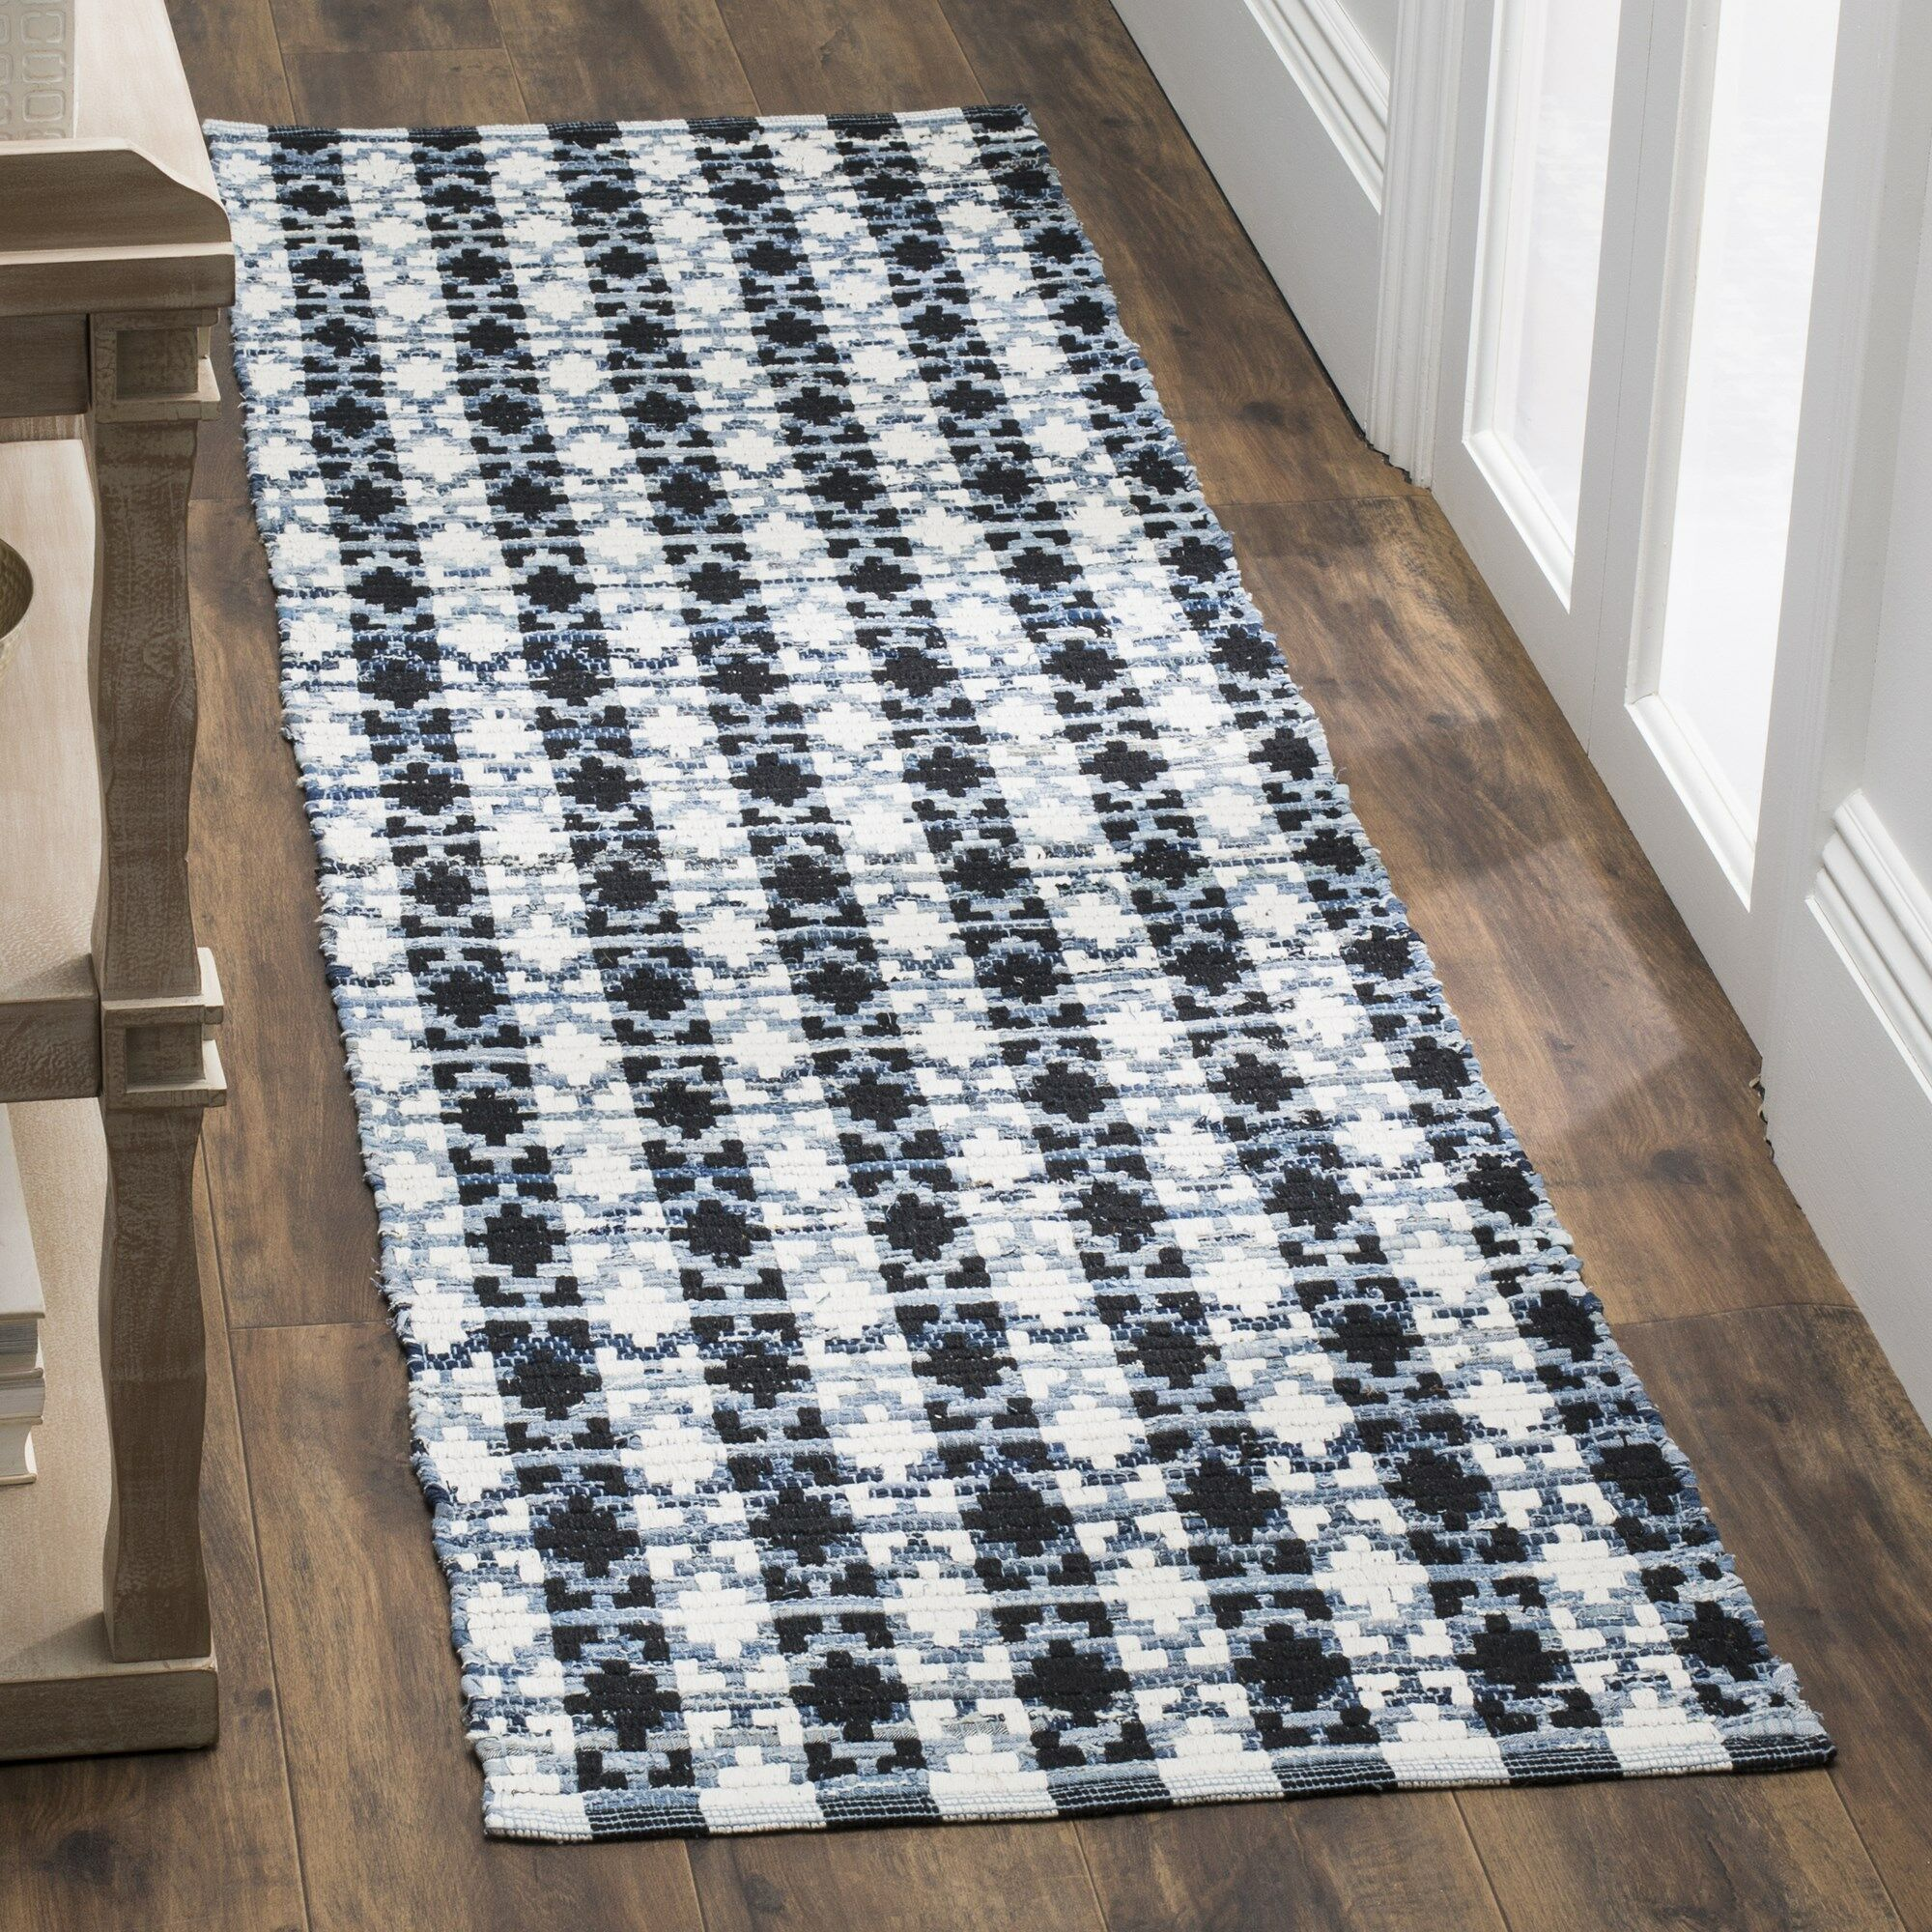 Saleem Hand-Woven Ivory Blue/Black Area Rug Rug Size: Rectangle 5' x 8'